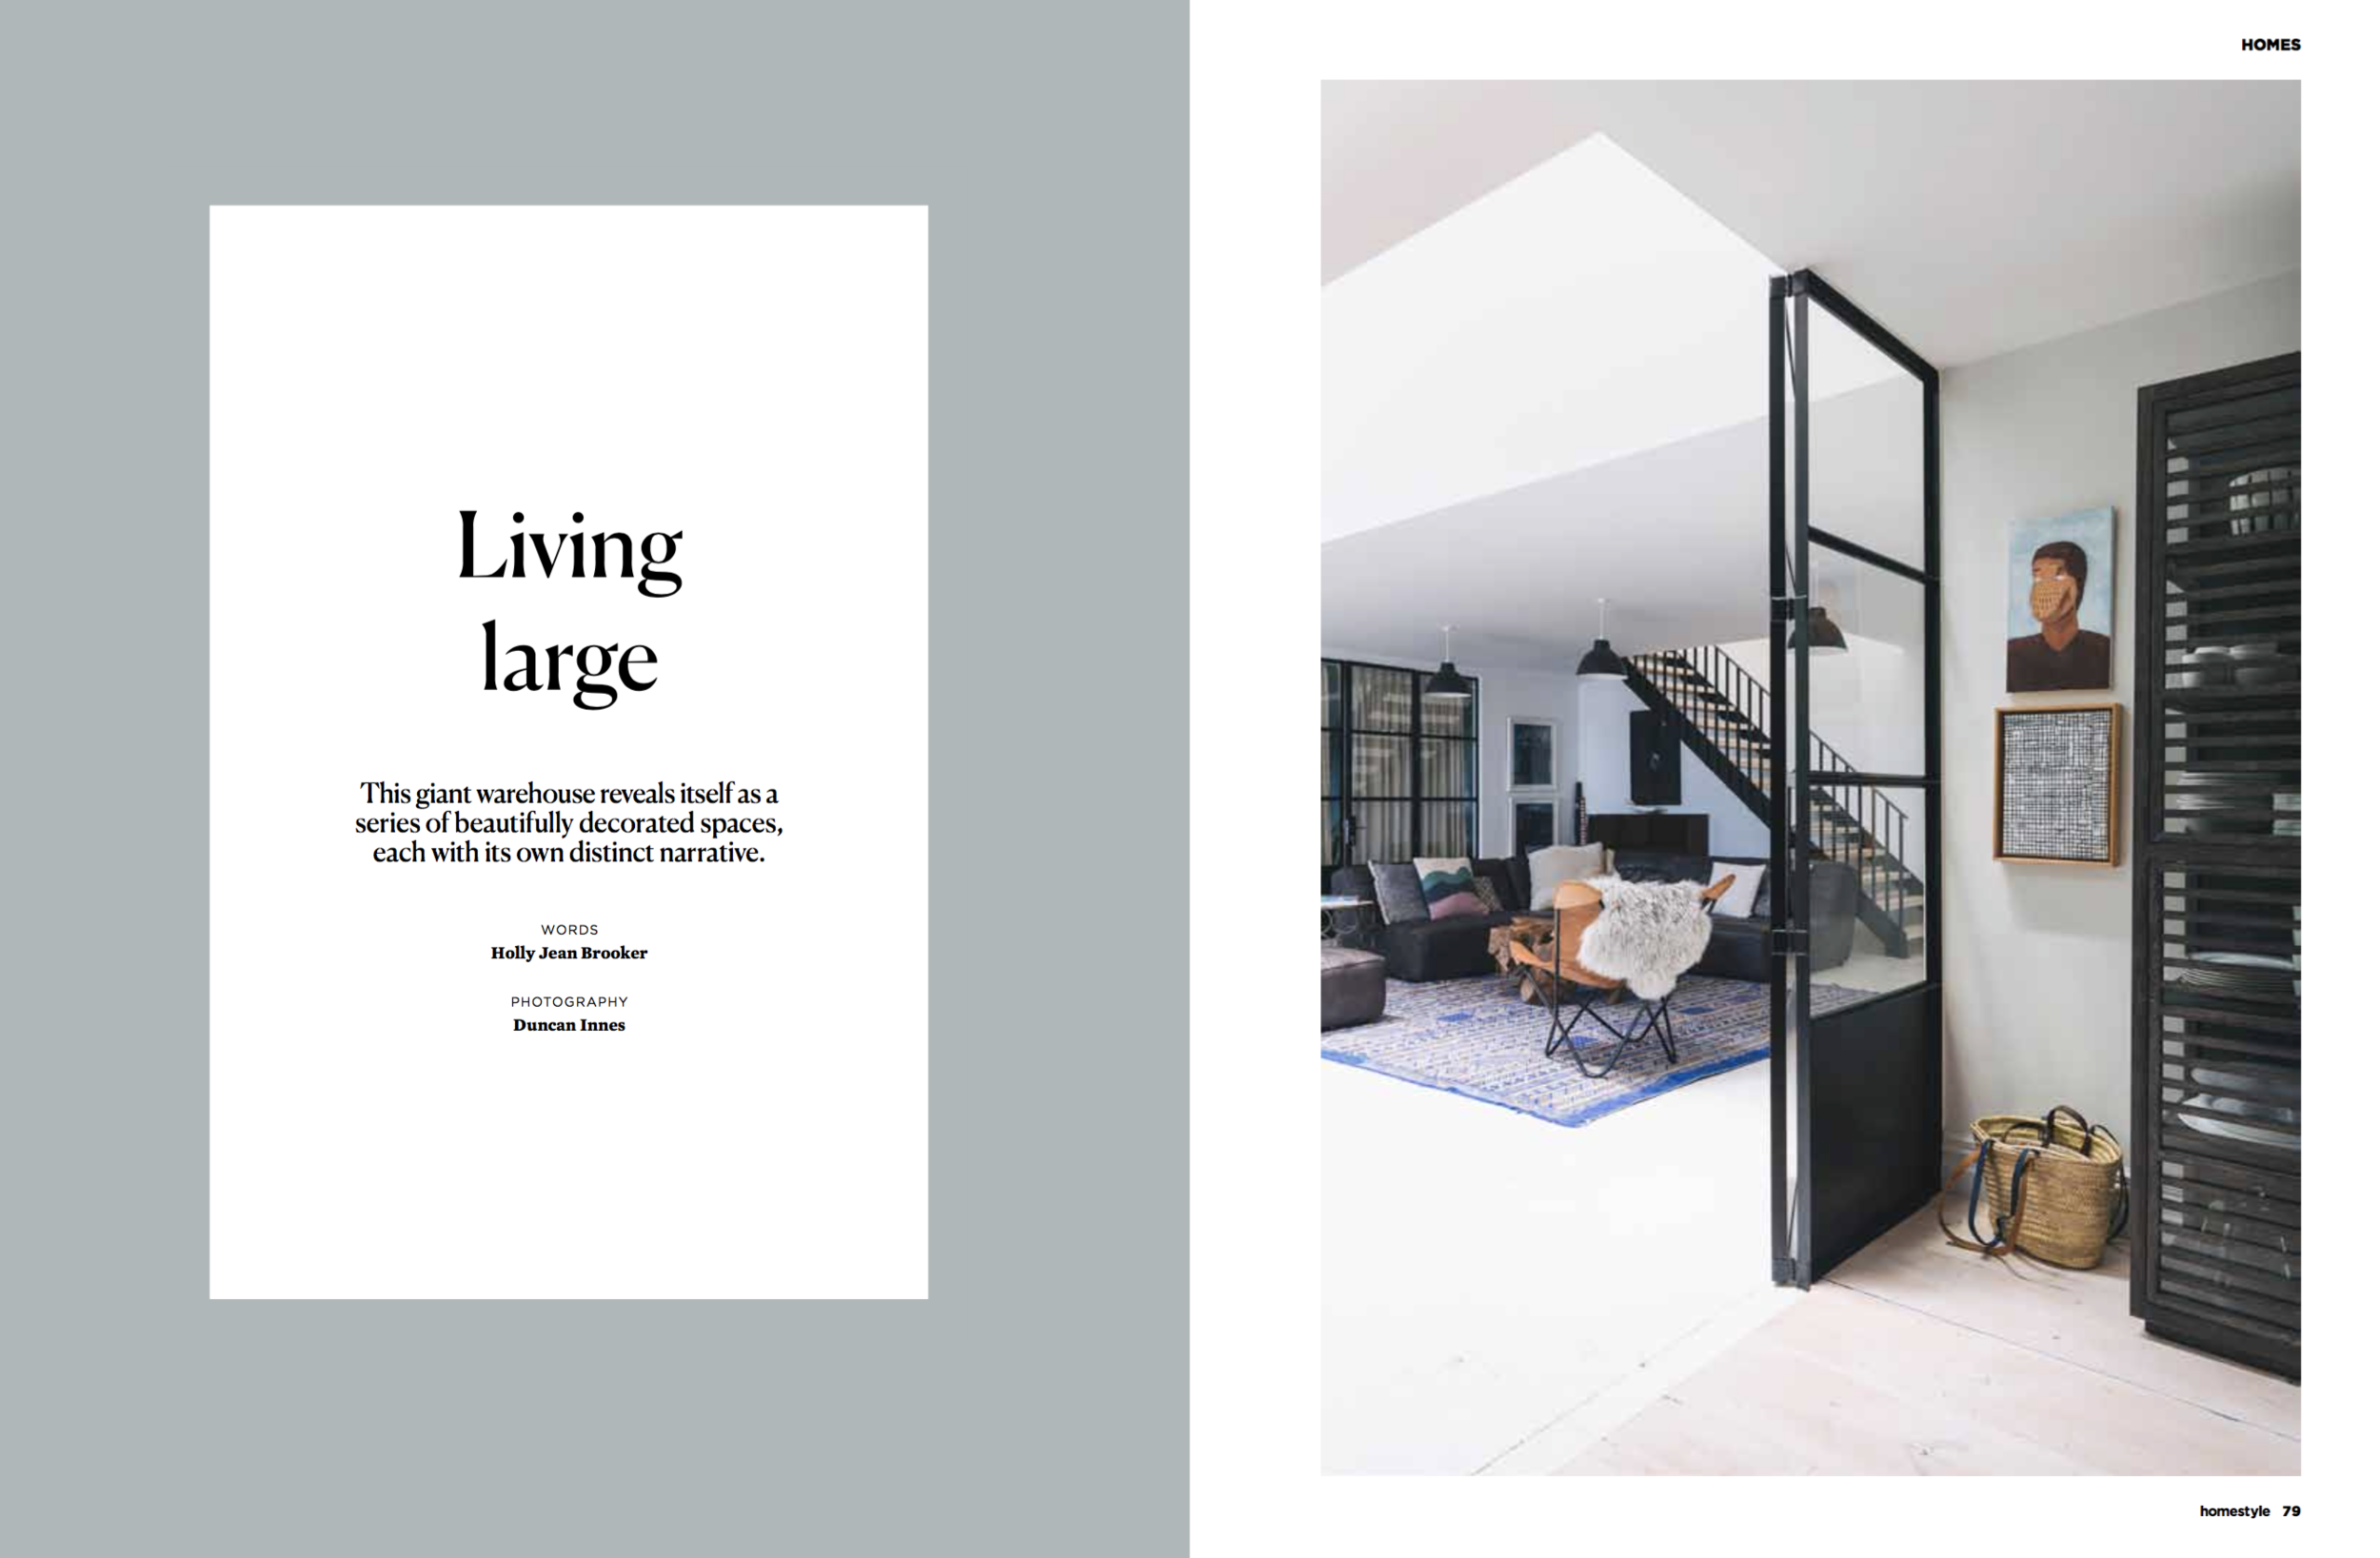 - Homestyle Magazine 2017Ex-warehouse in Grey Lynn gets a makeoverWords by Holly Jean BrookerPhotography by Duncan Innes